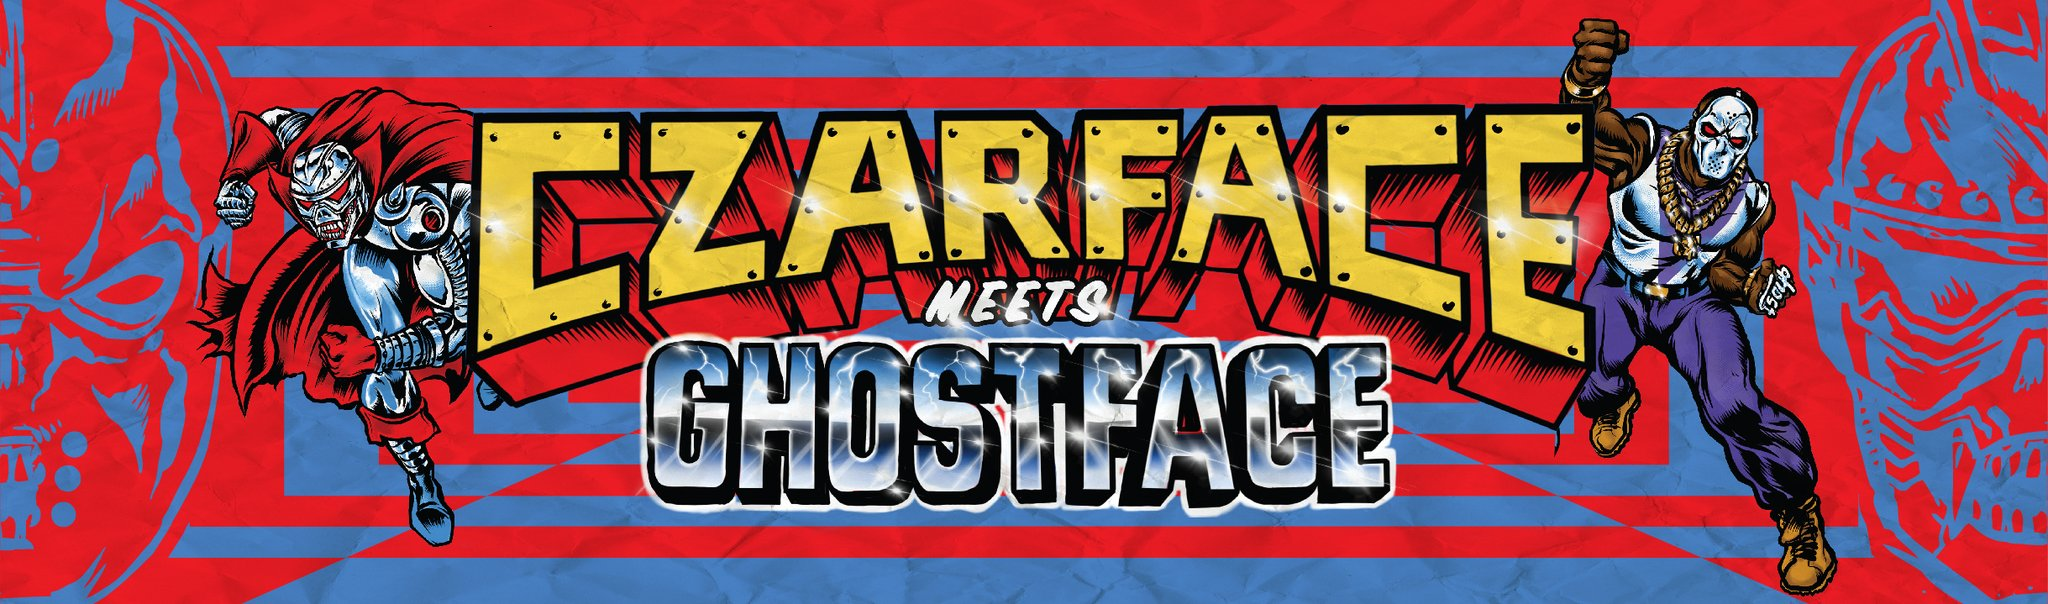 Hip-Hop Supergroup Czarface Joins Forces with Ghostface Killah for New Album